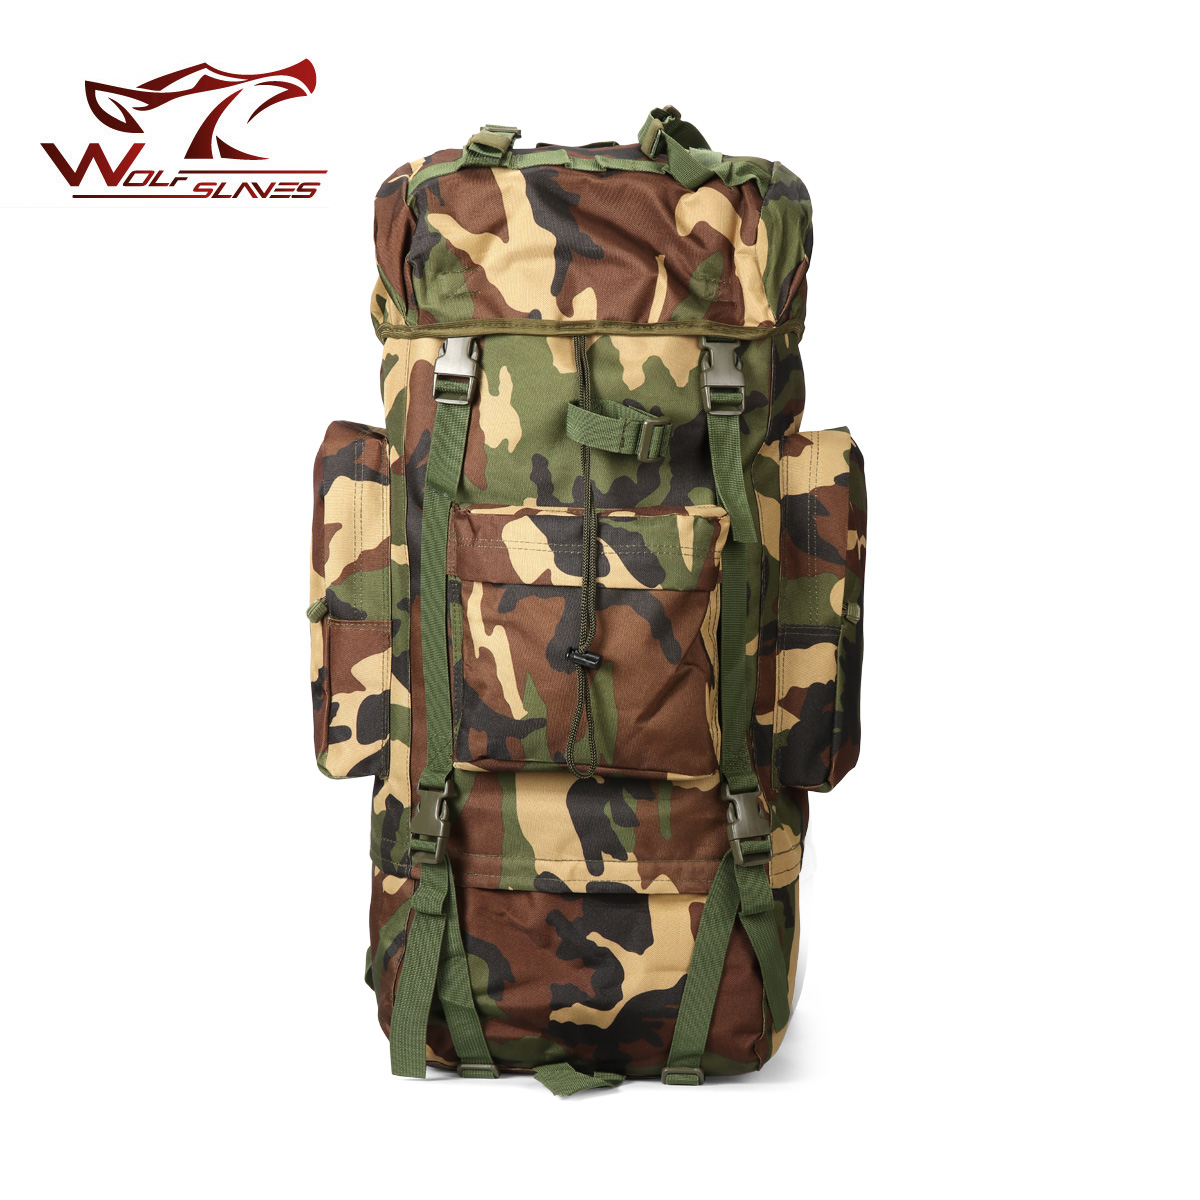 Outdoor Sports Cycling 65L Tactical Military Molle Camouflage Assault Backpack Combat Camping Rucksack Backpack with Iron Shelf outlife new style professional military tactical multifunction shovel outdoor camping survival folding spade tool equipment